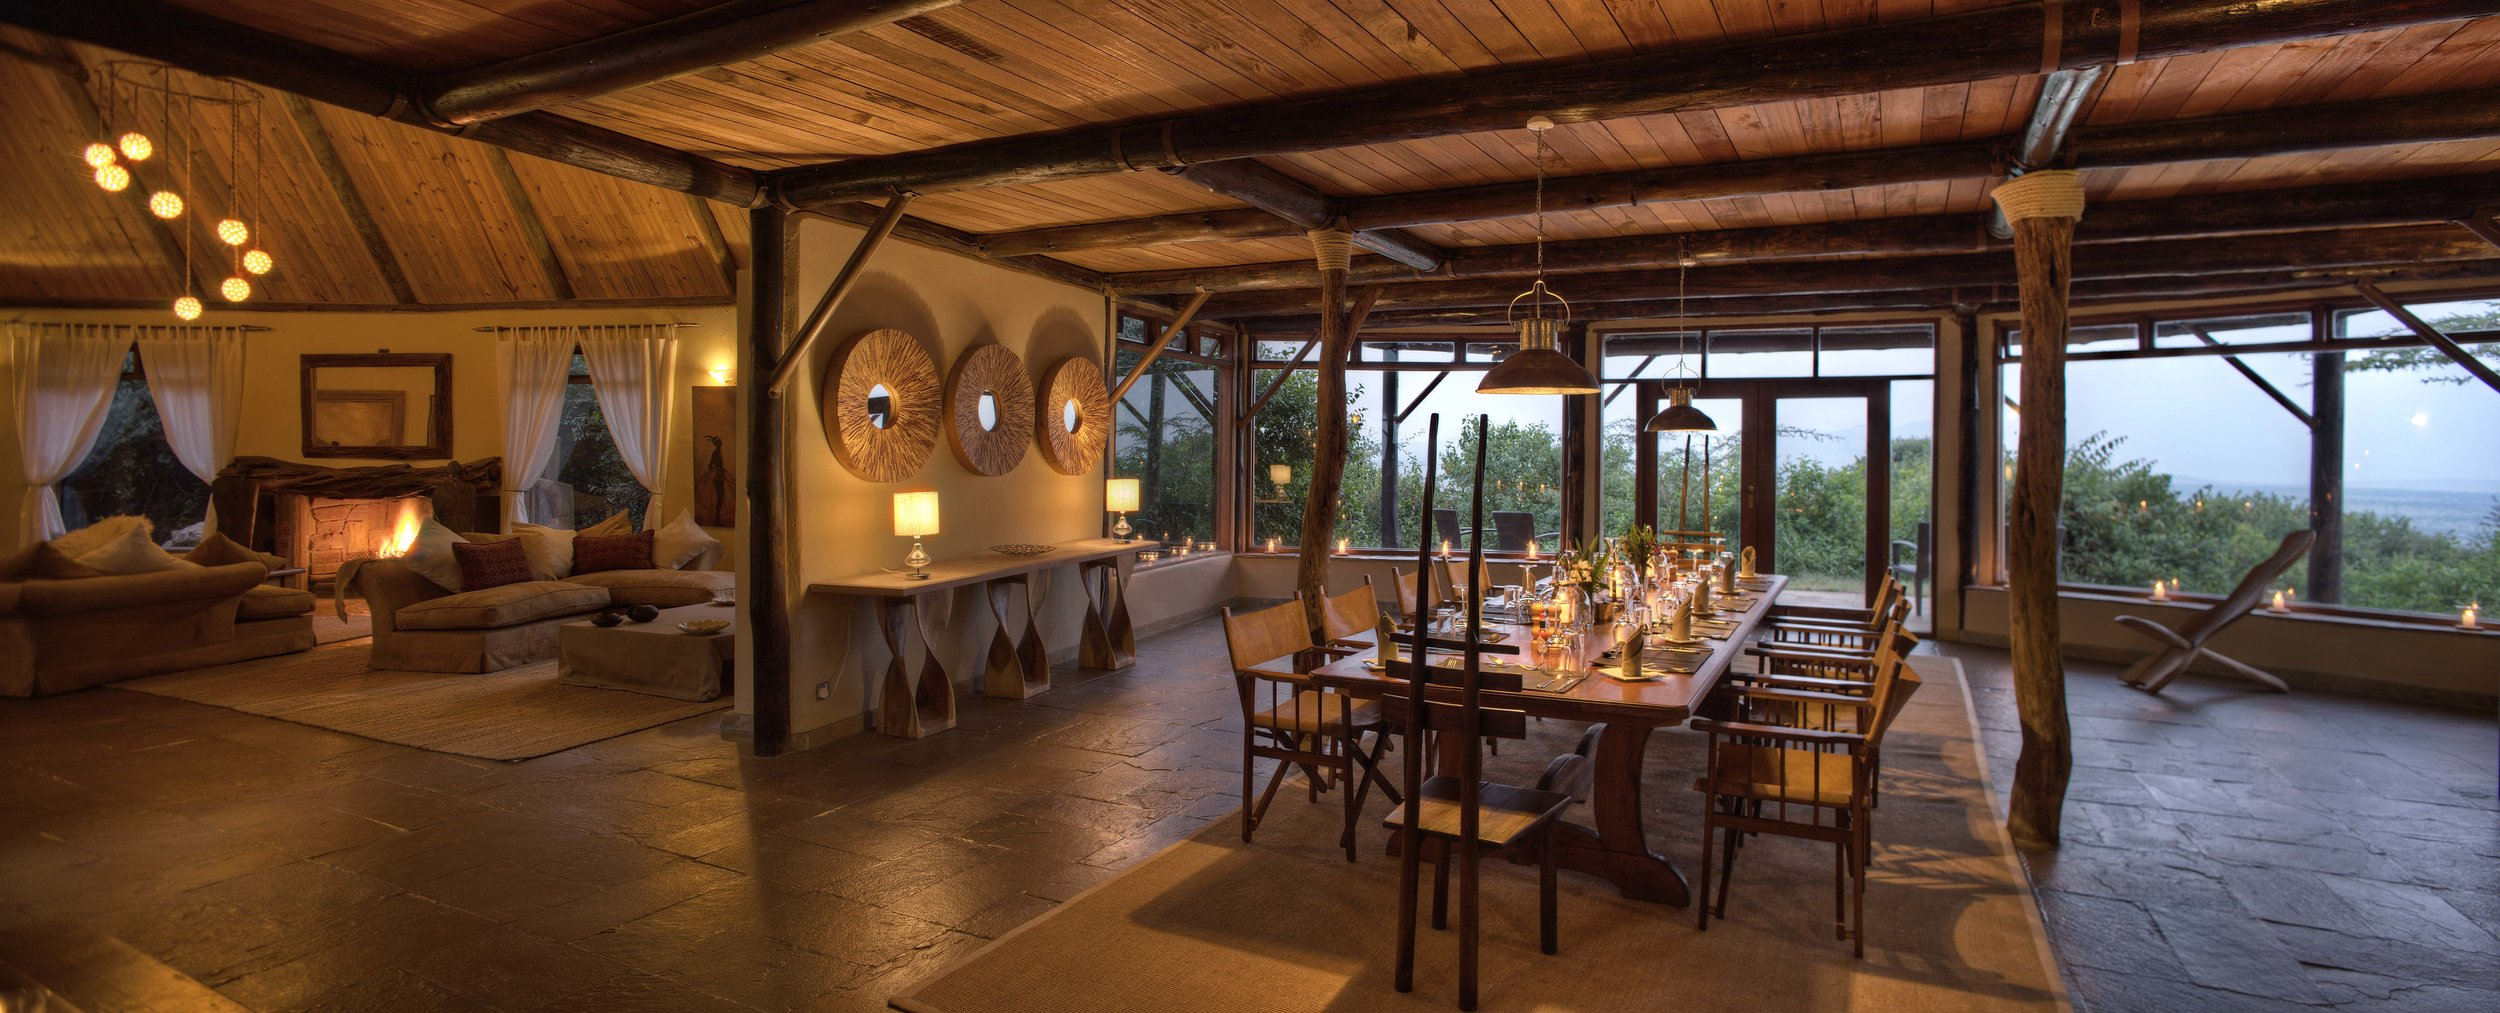 Cottars Private House - Dining Area 2.jpg